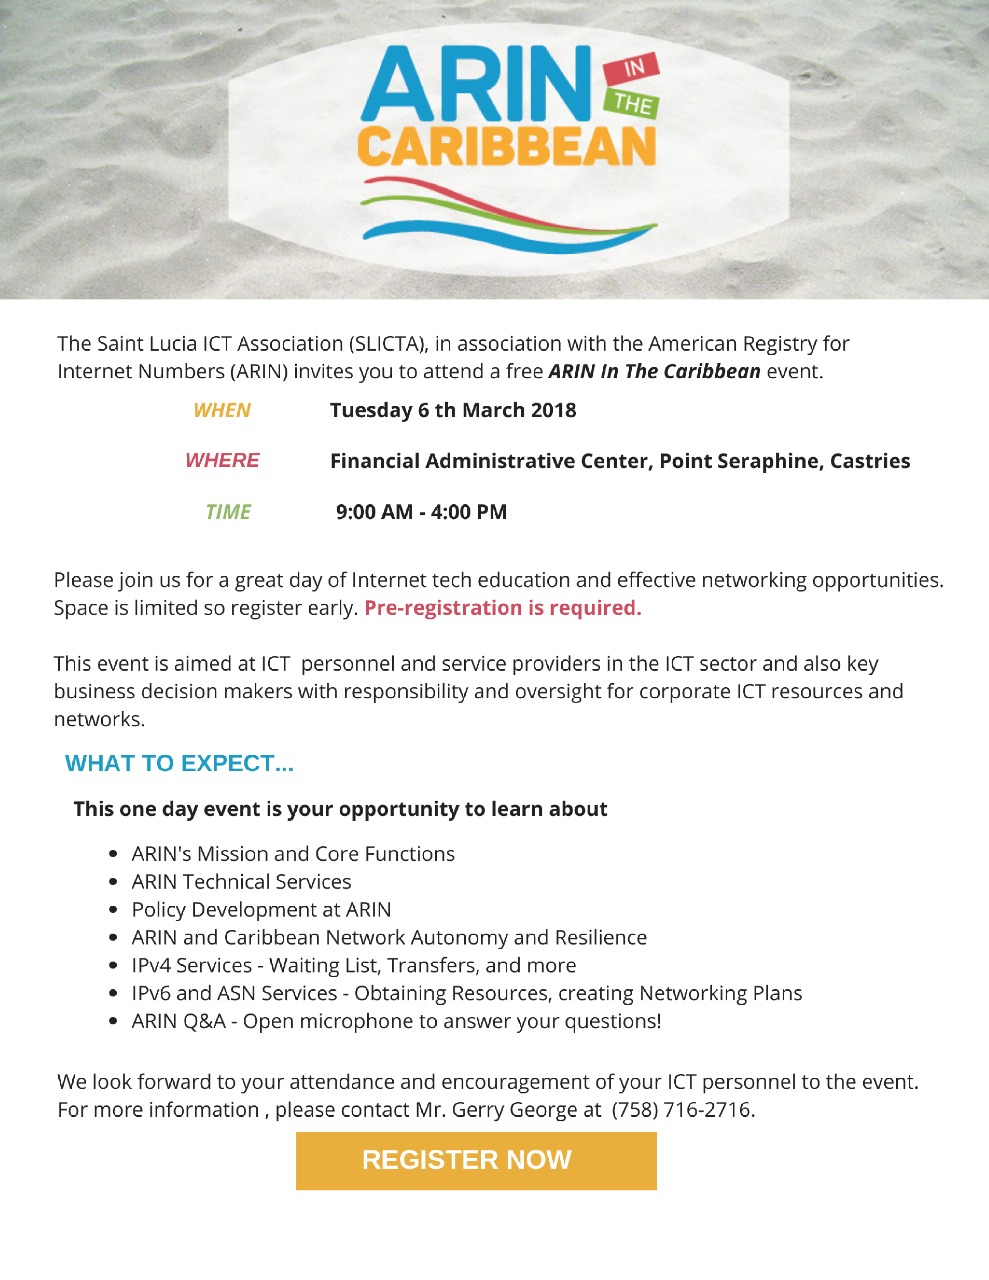 Register for ARIN in the Caribbean